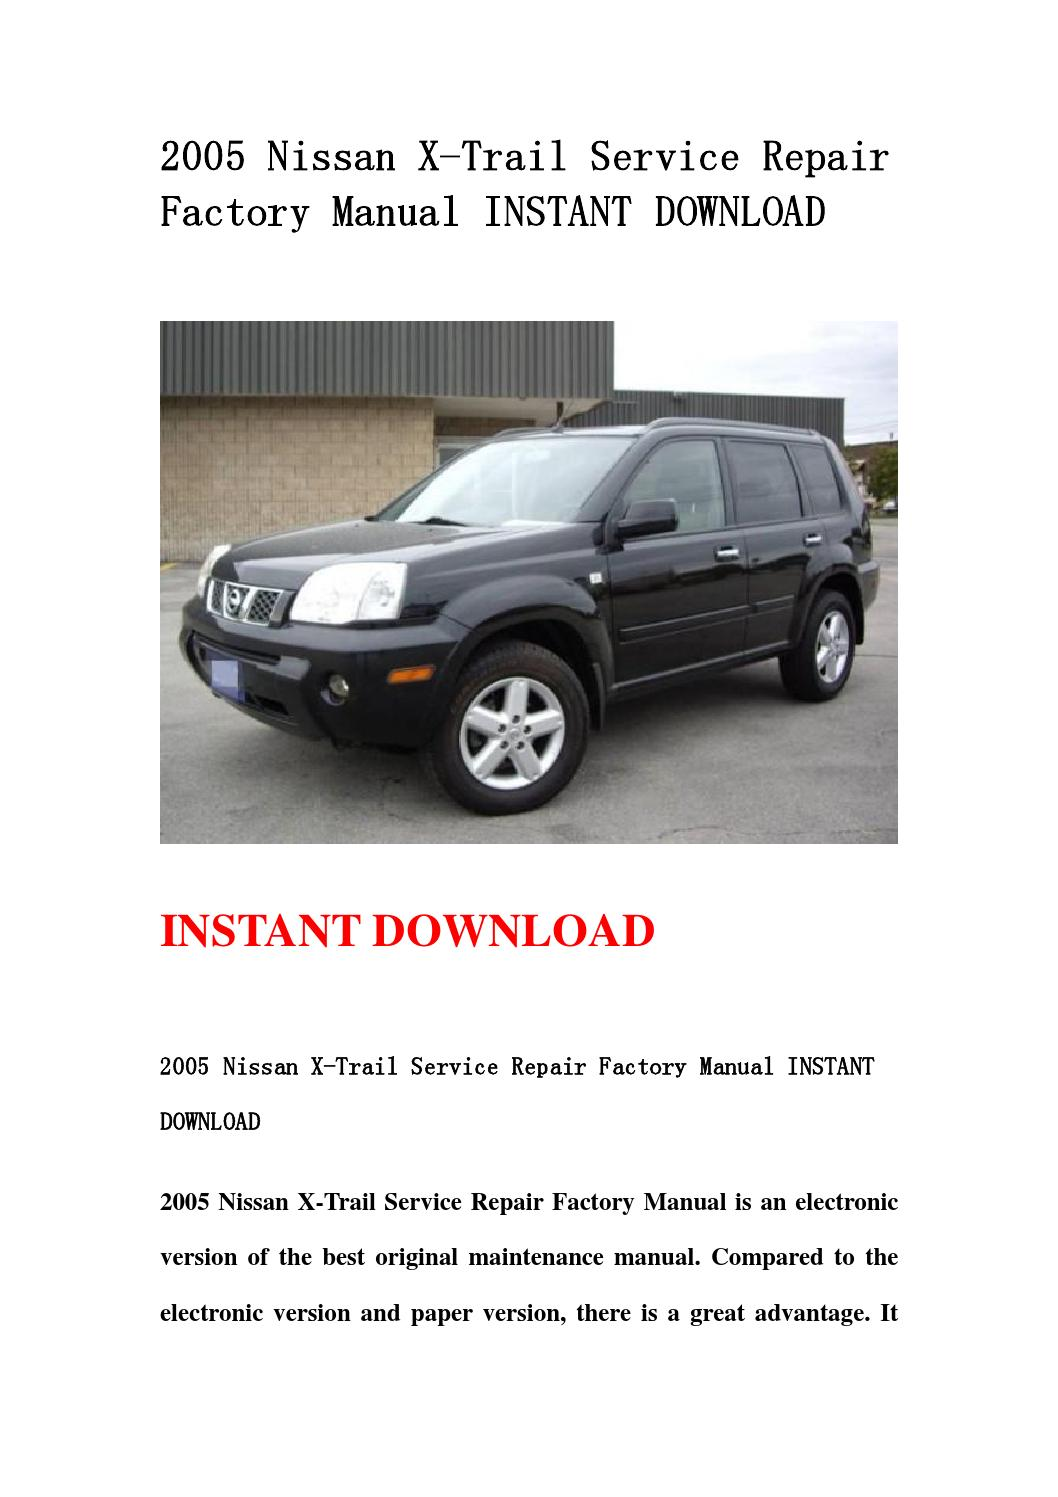 Nissan x trail manual download free